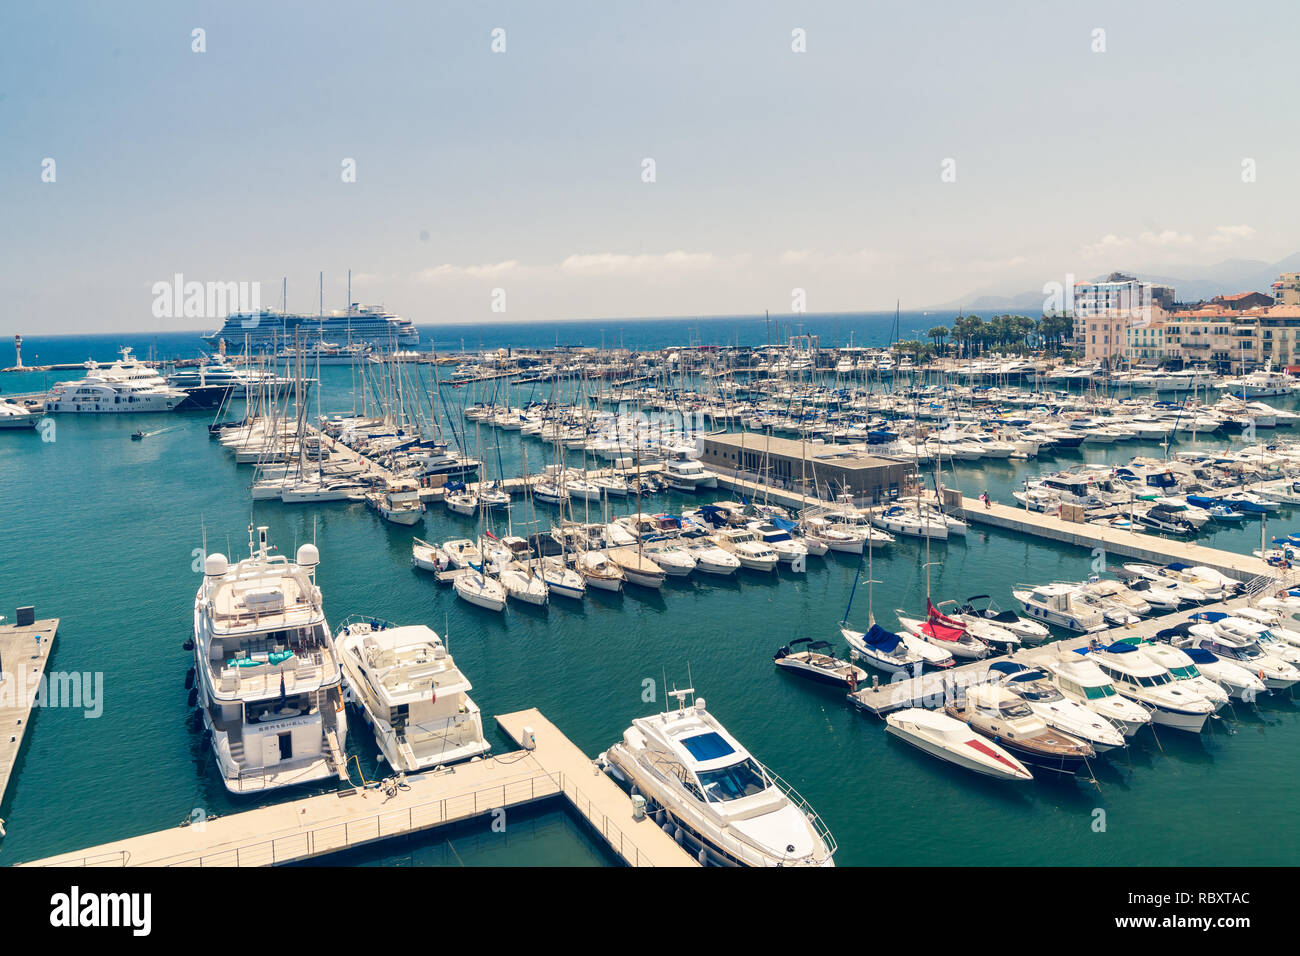 Cannes Beach Boats - Stock Image